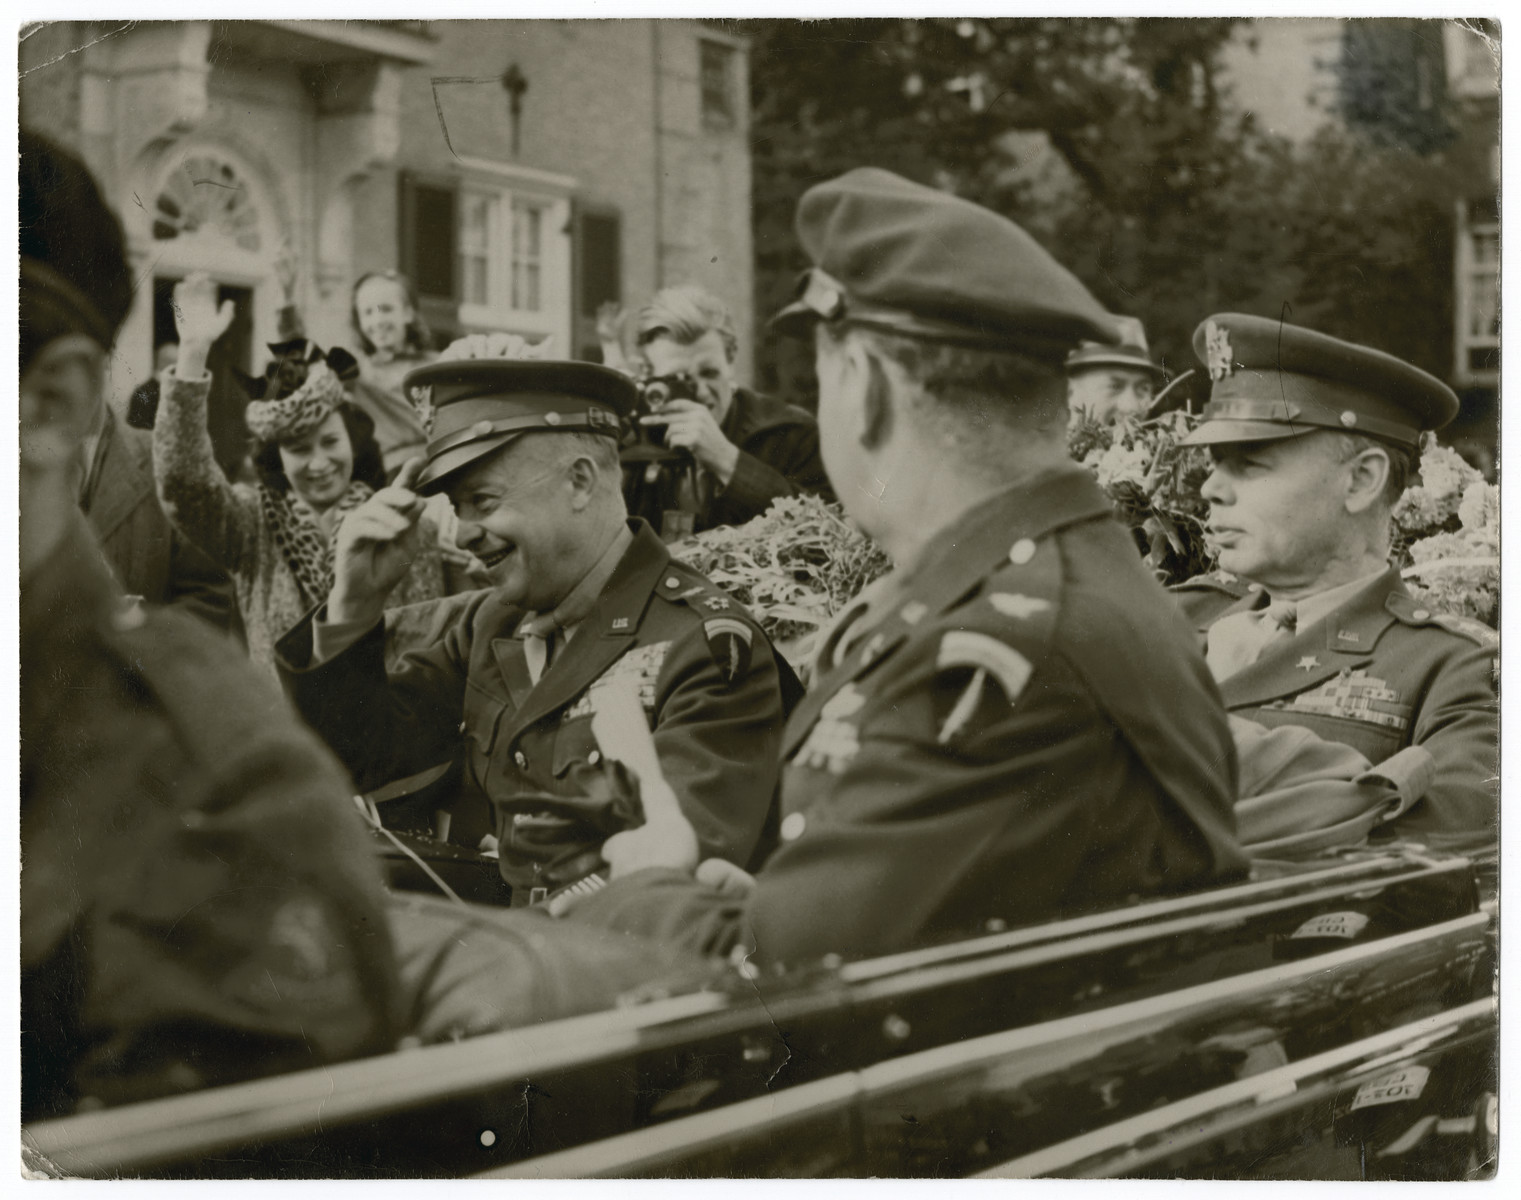 """Gen. Eisenhower pays an official visit to The Netherlands after liberation.  Original caption reads:  General Eisenhower's visit to The Netherlands.  General Eisenhower leaving U.S. Ambassador Hornbeck's residence at the Hague.  In car Ike, Col. Griffith (with back to camera) and Lt. Gen. W.B.Smith.  (Girl waving immediately in front of General Eisenhower was girl who gave the General flowers and a kiss just before the General got in the car""""."""